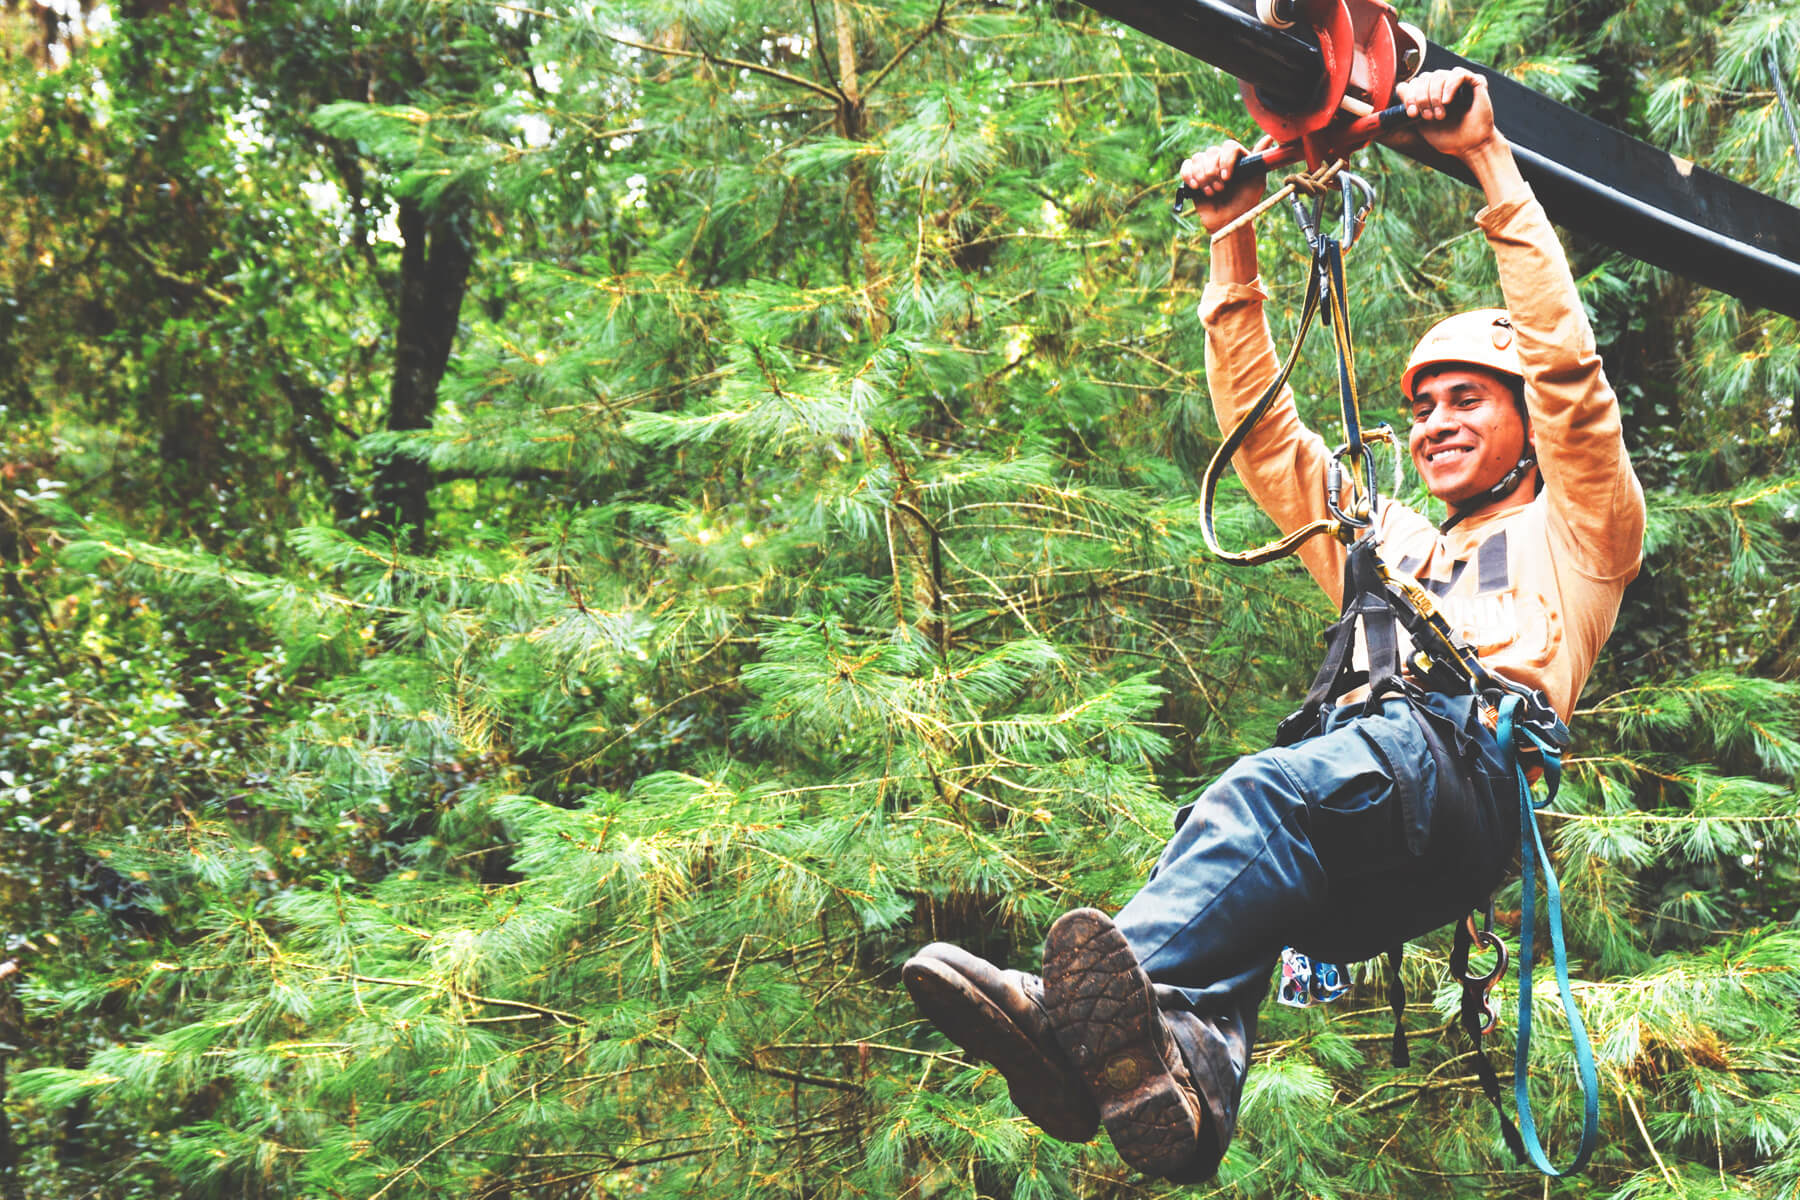 roller-zip-line-ecoprojects-2